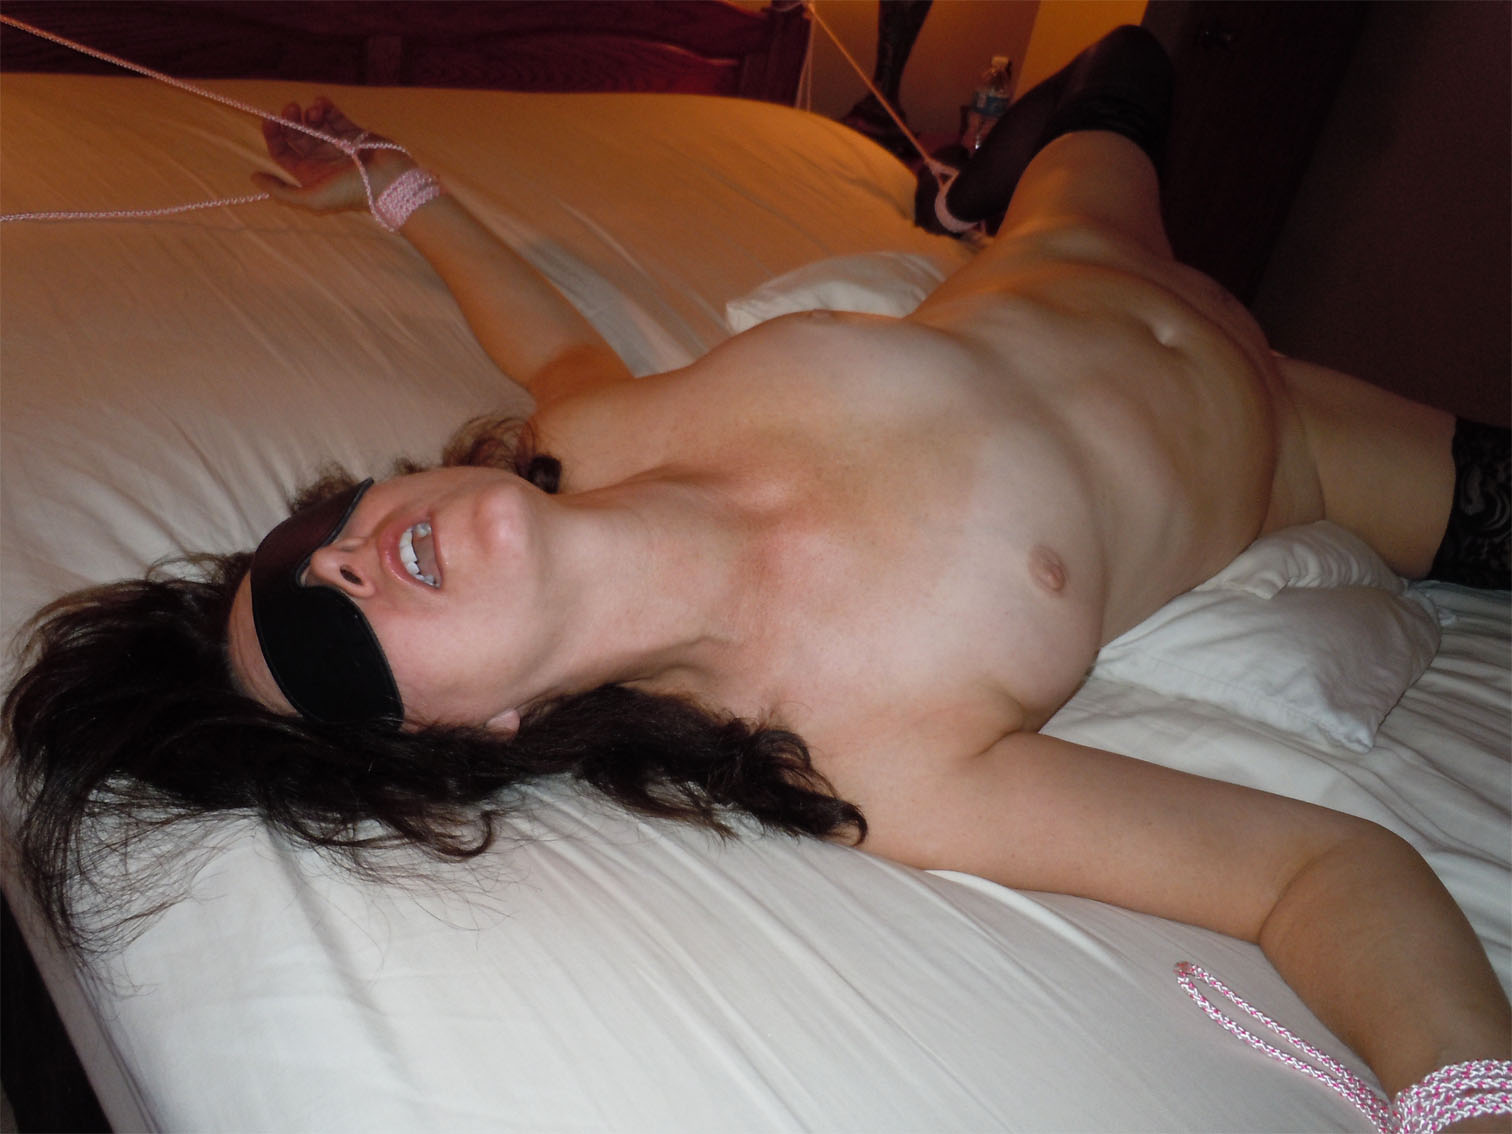 With you wife blindfolded and stripped